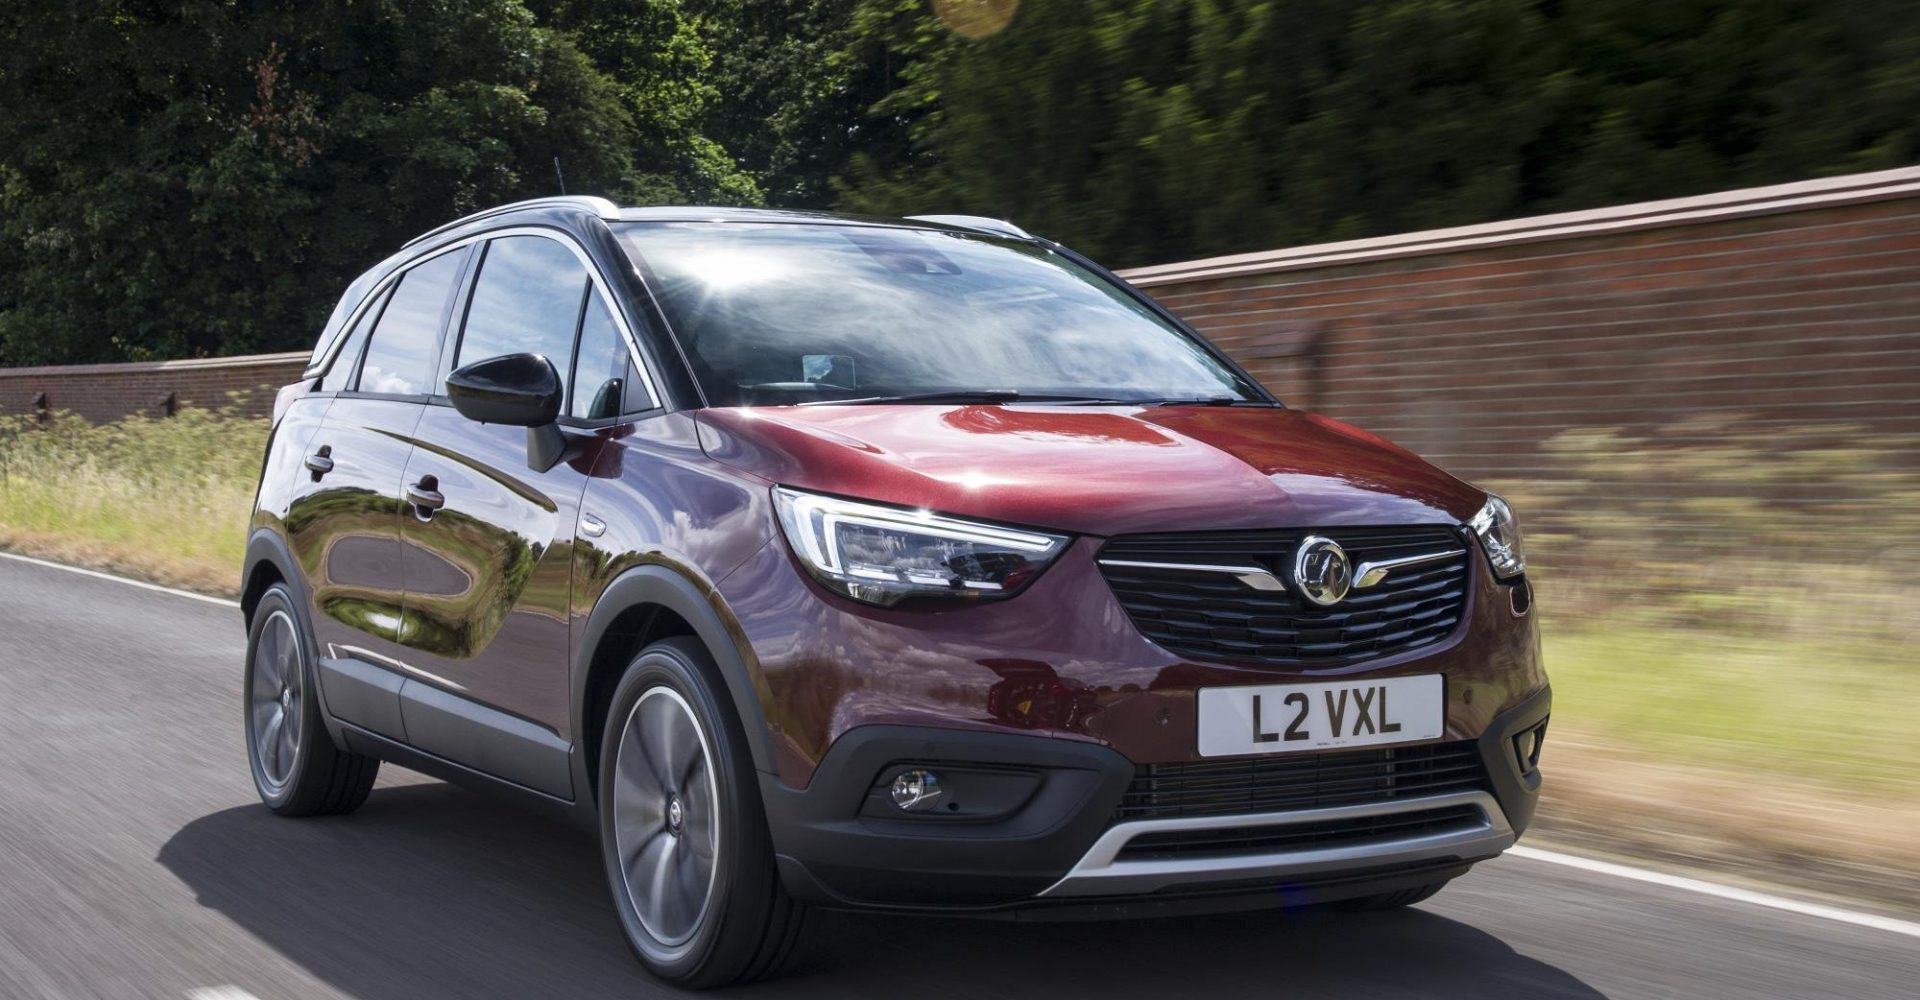 Vauxhall-driving NHS staff to get free roadside assistance